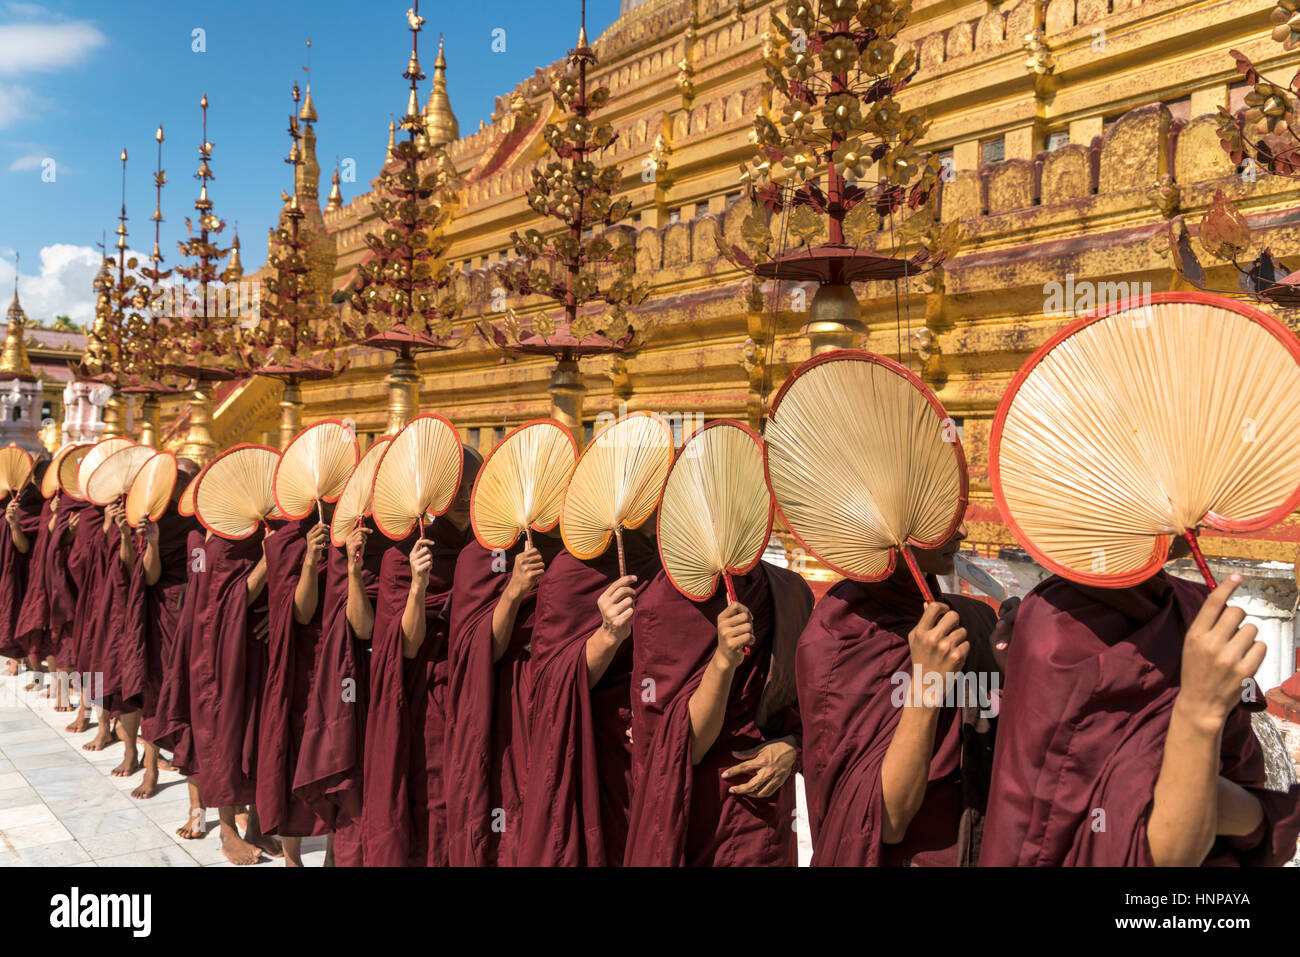 Monks with fans waiting for donations, Shwezigon Pagoda, Bagan, Myanmar - Stock Image